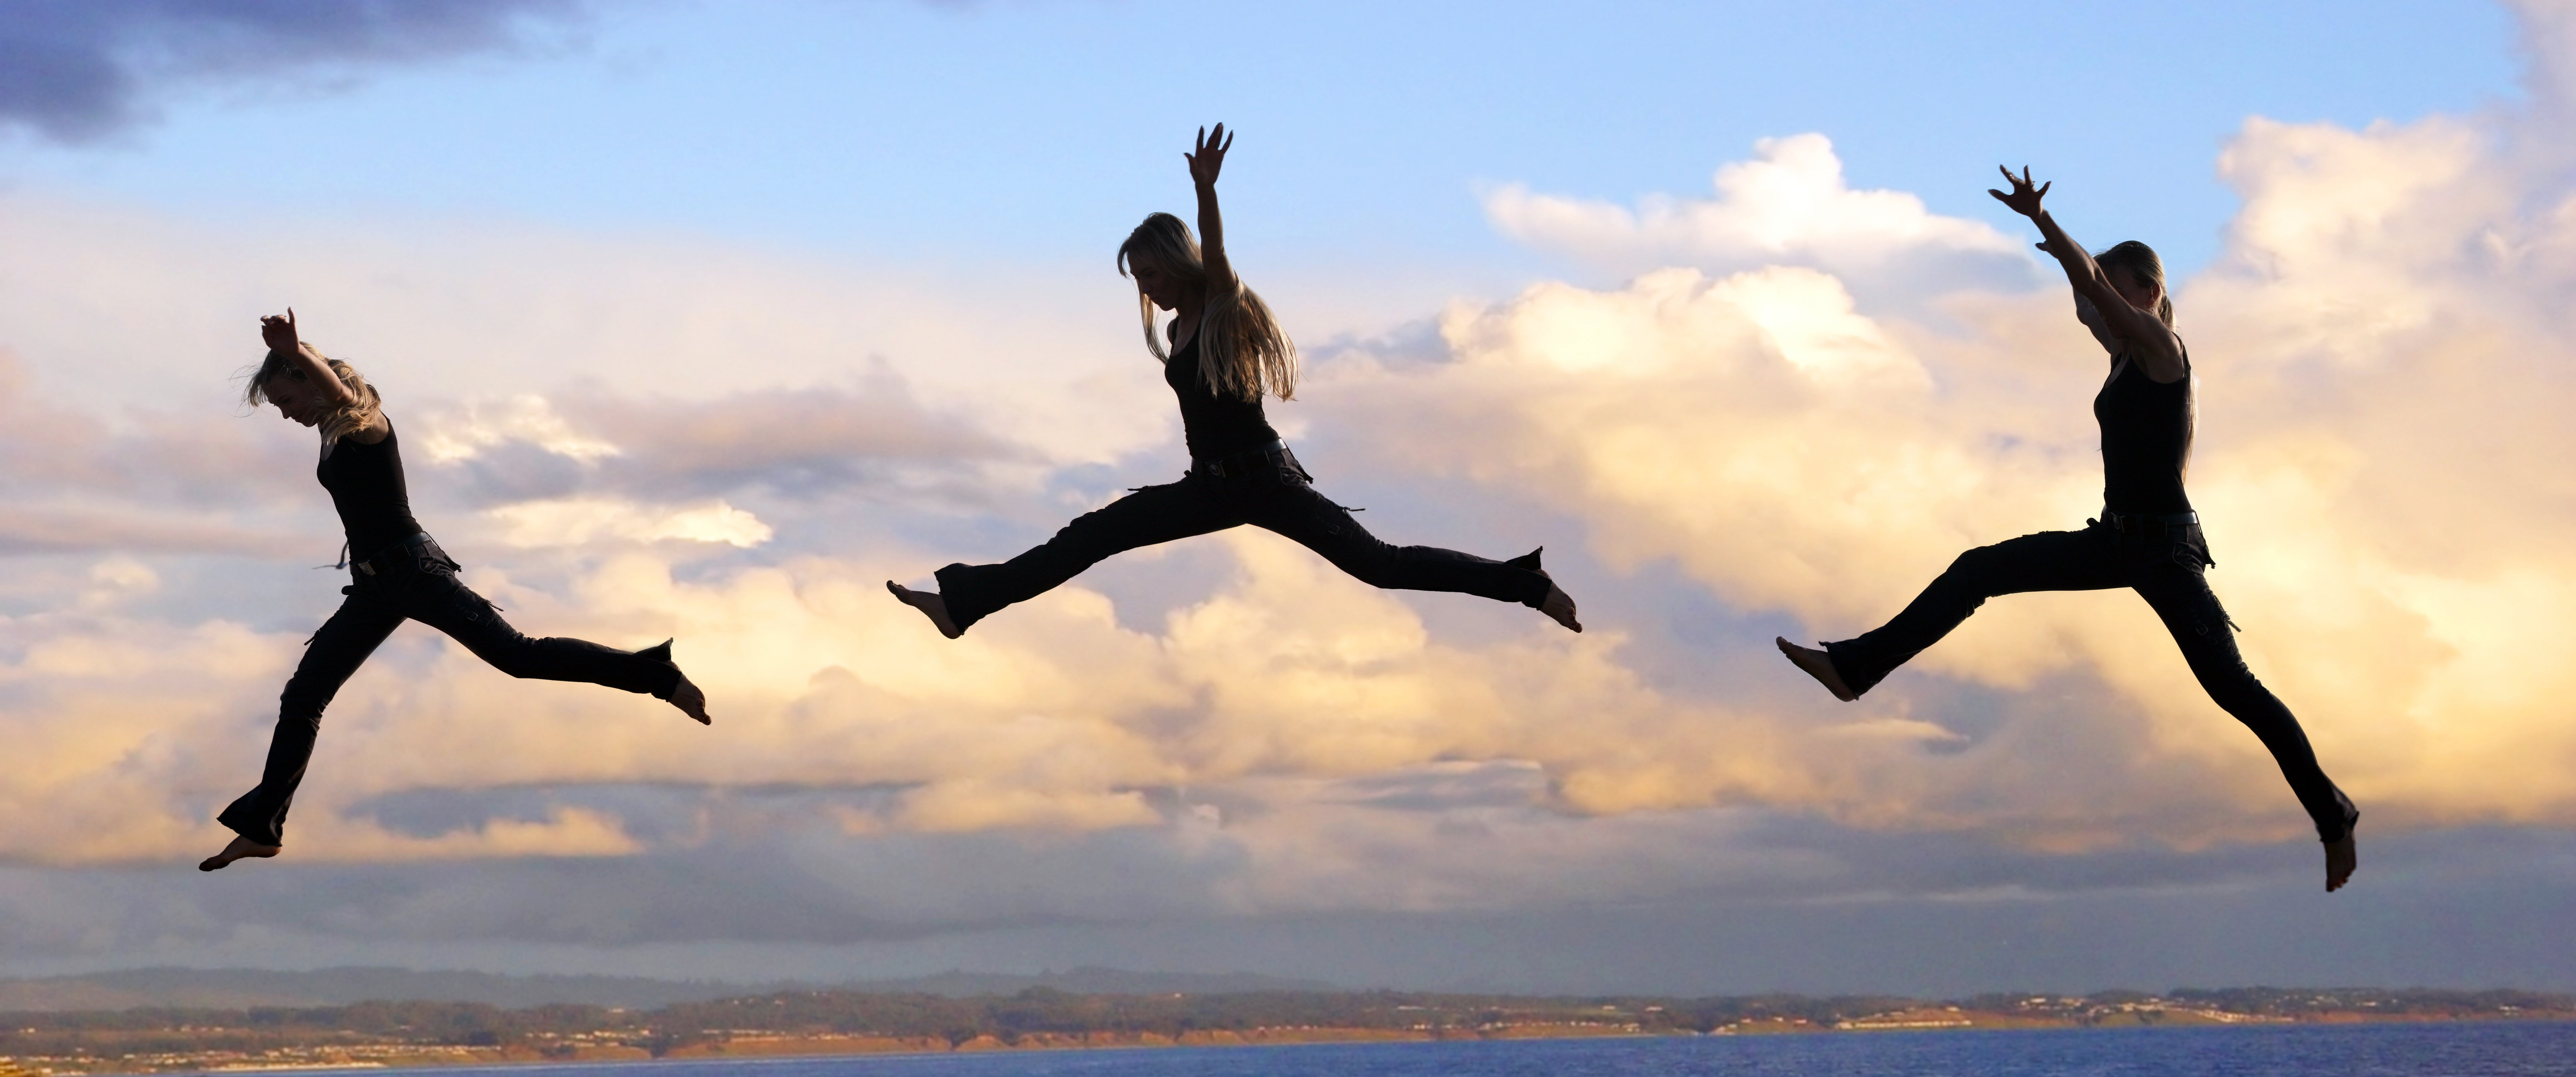 3-people-jumping-high1.jpg